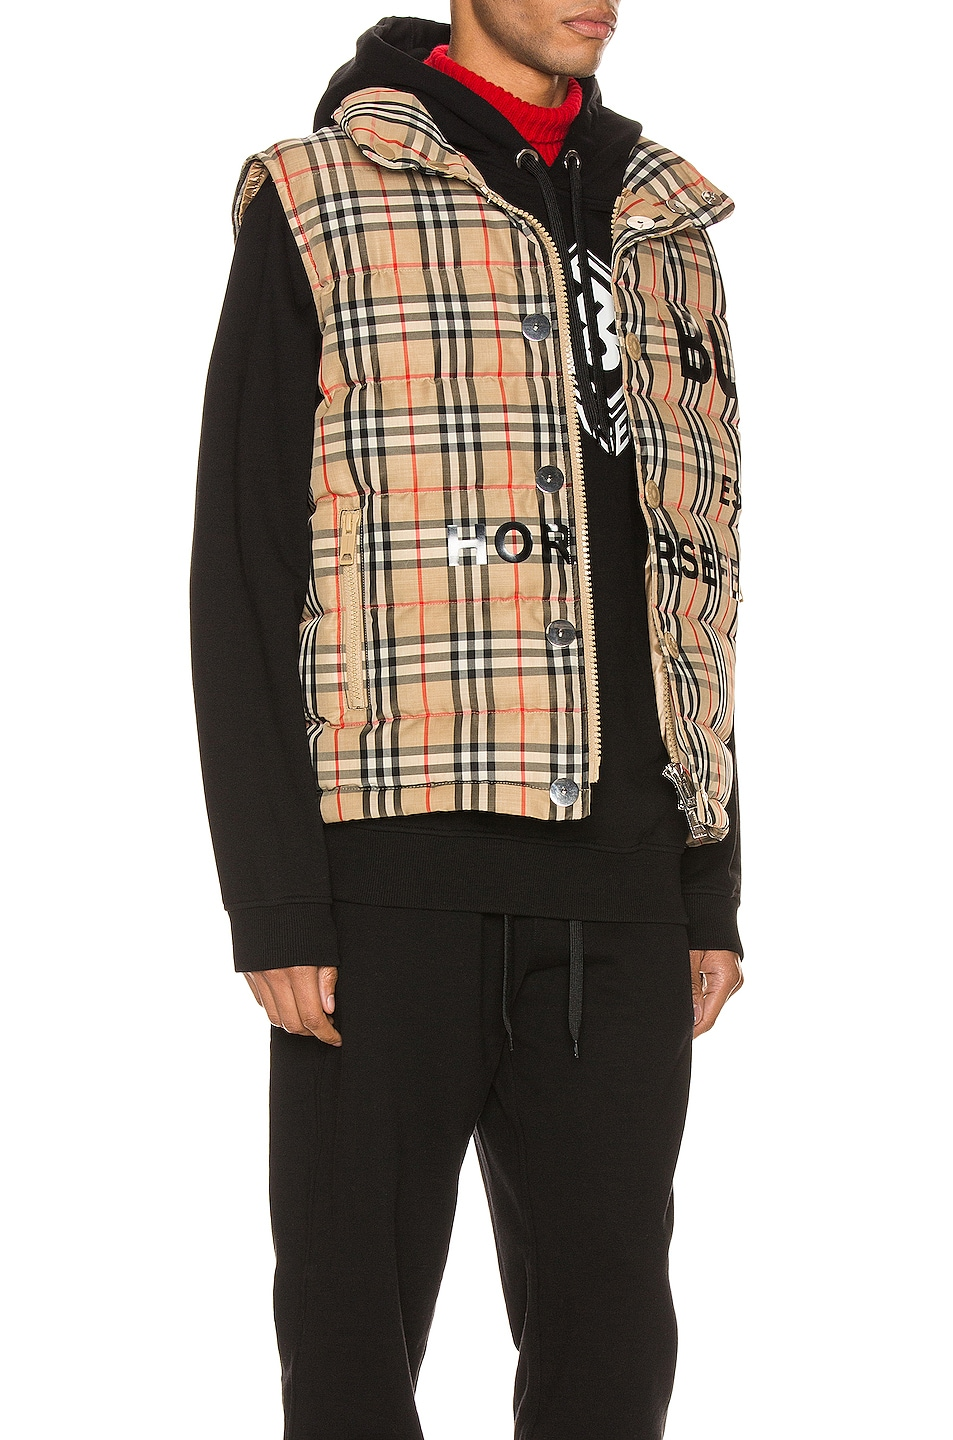 Image 3 of Burberry Midland Jacket in Archive Beige IP Check